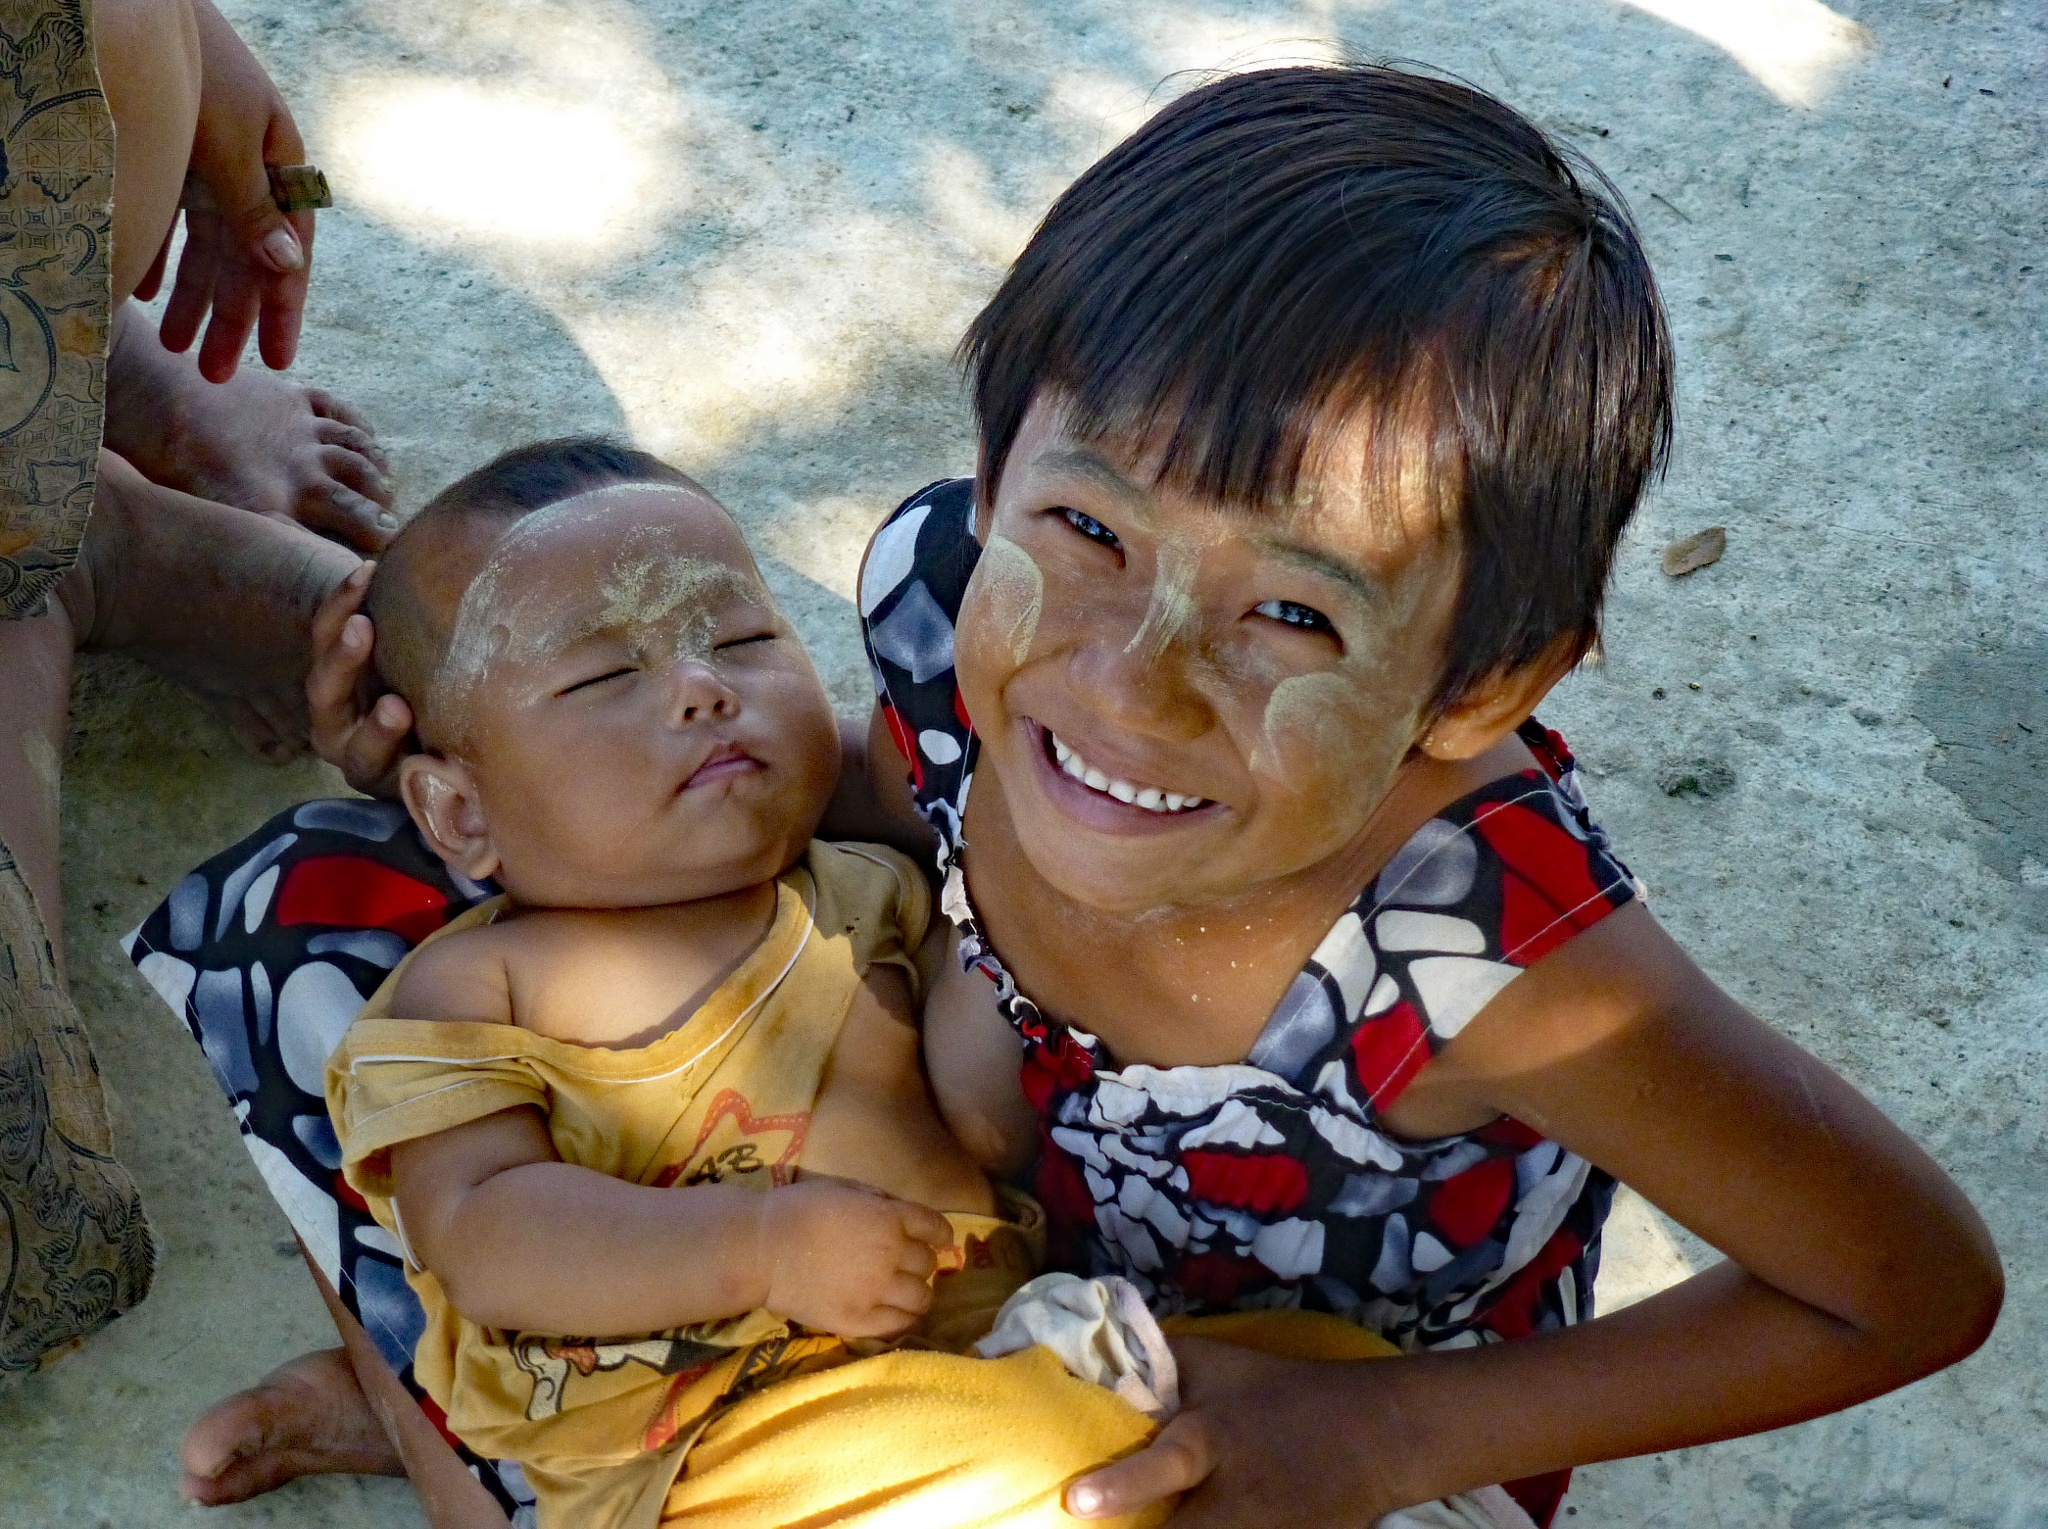 Burmese sister and baby brother by Frank Brande